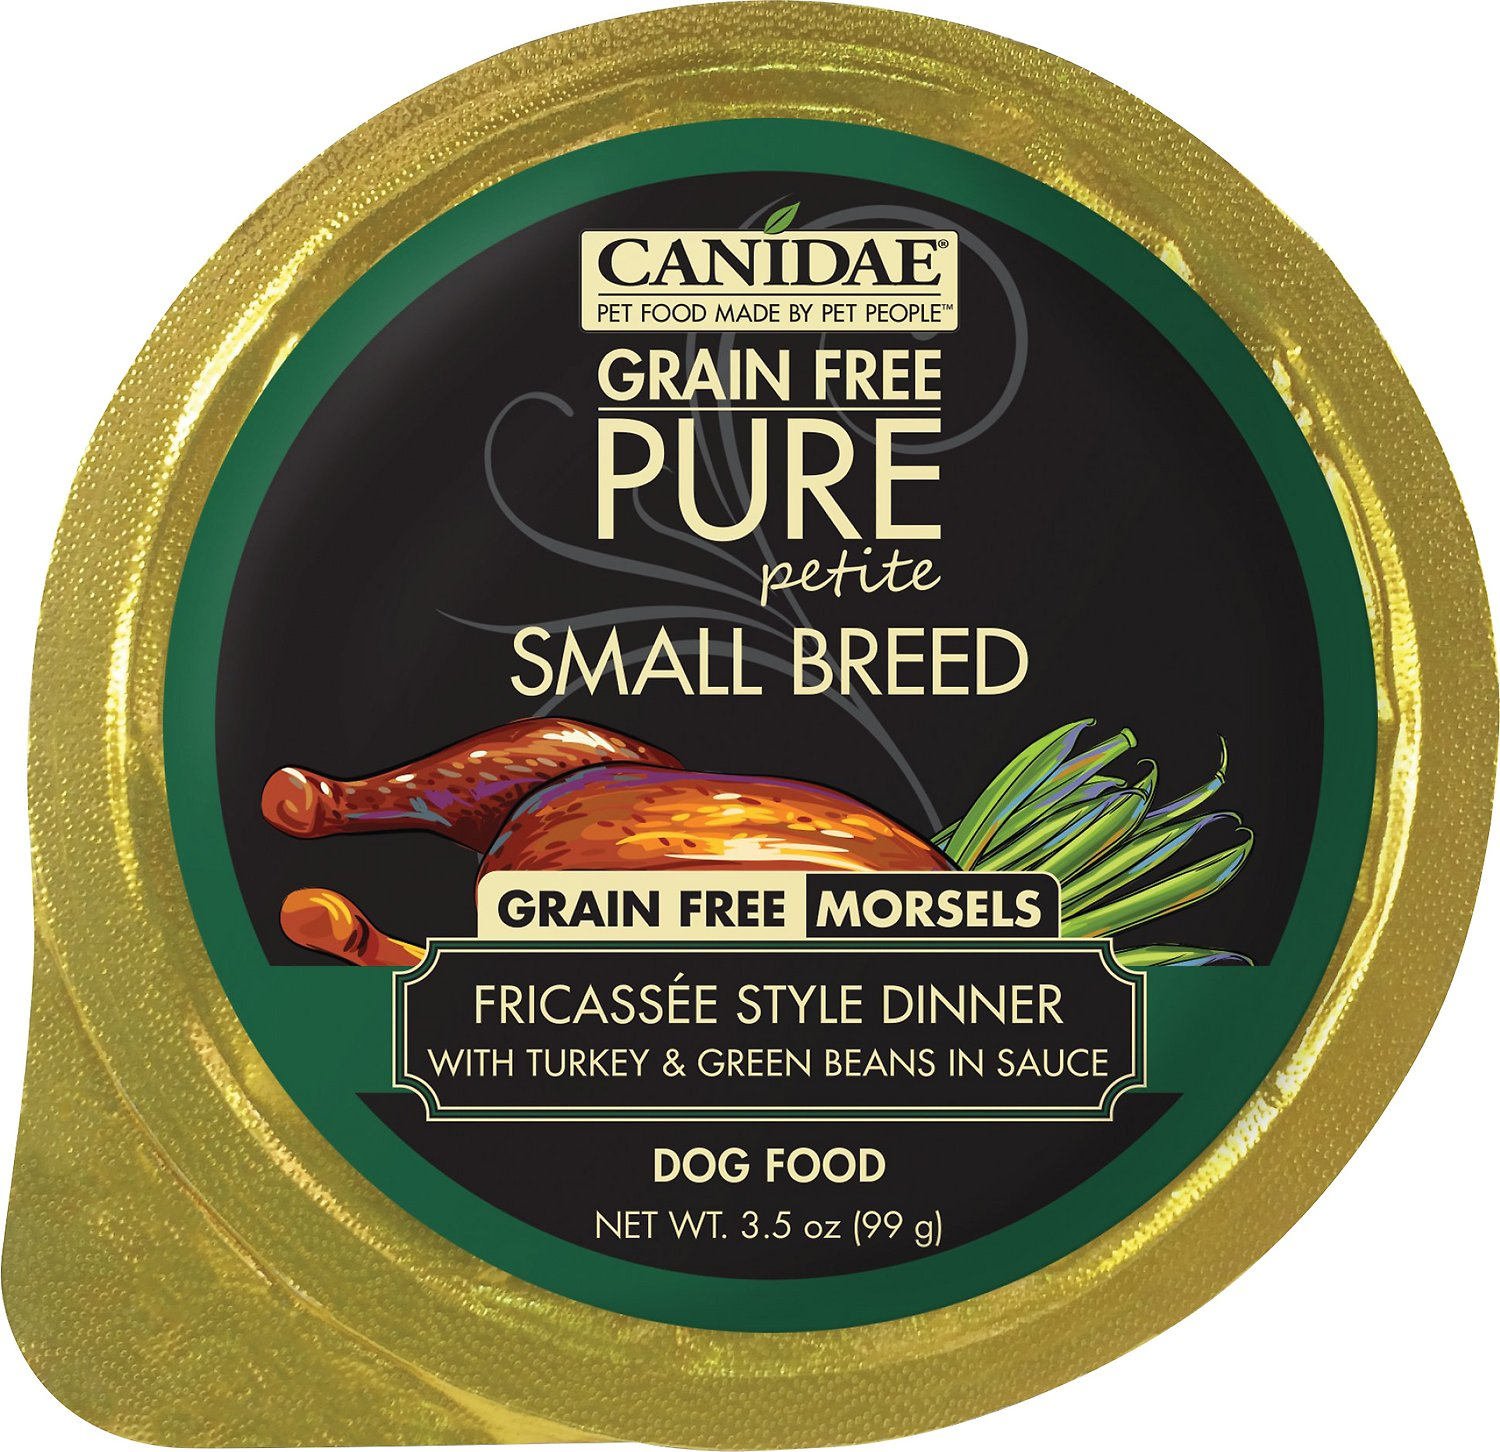 CANIDAE Grain-Free PURE Petite Fricassee Style Dinner with Turkey & Green Beans in Sauce Small Breed Dog Food Trays, 3.5-oz